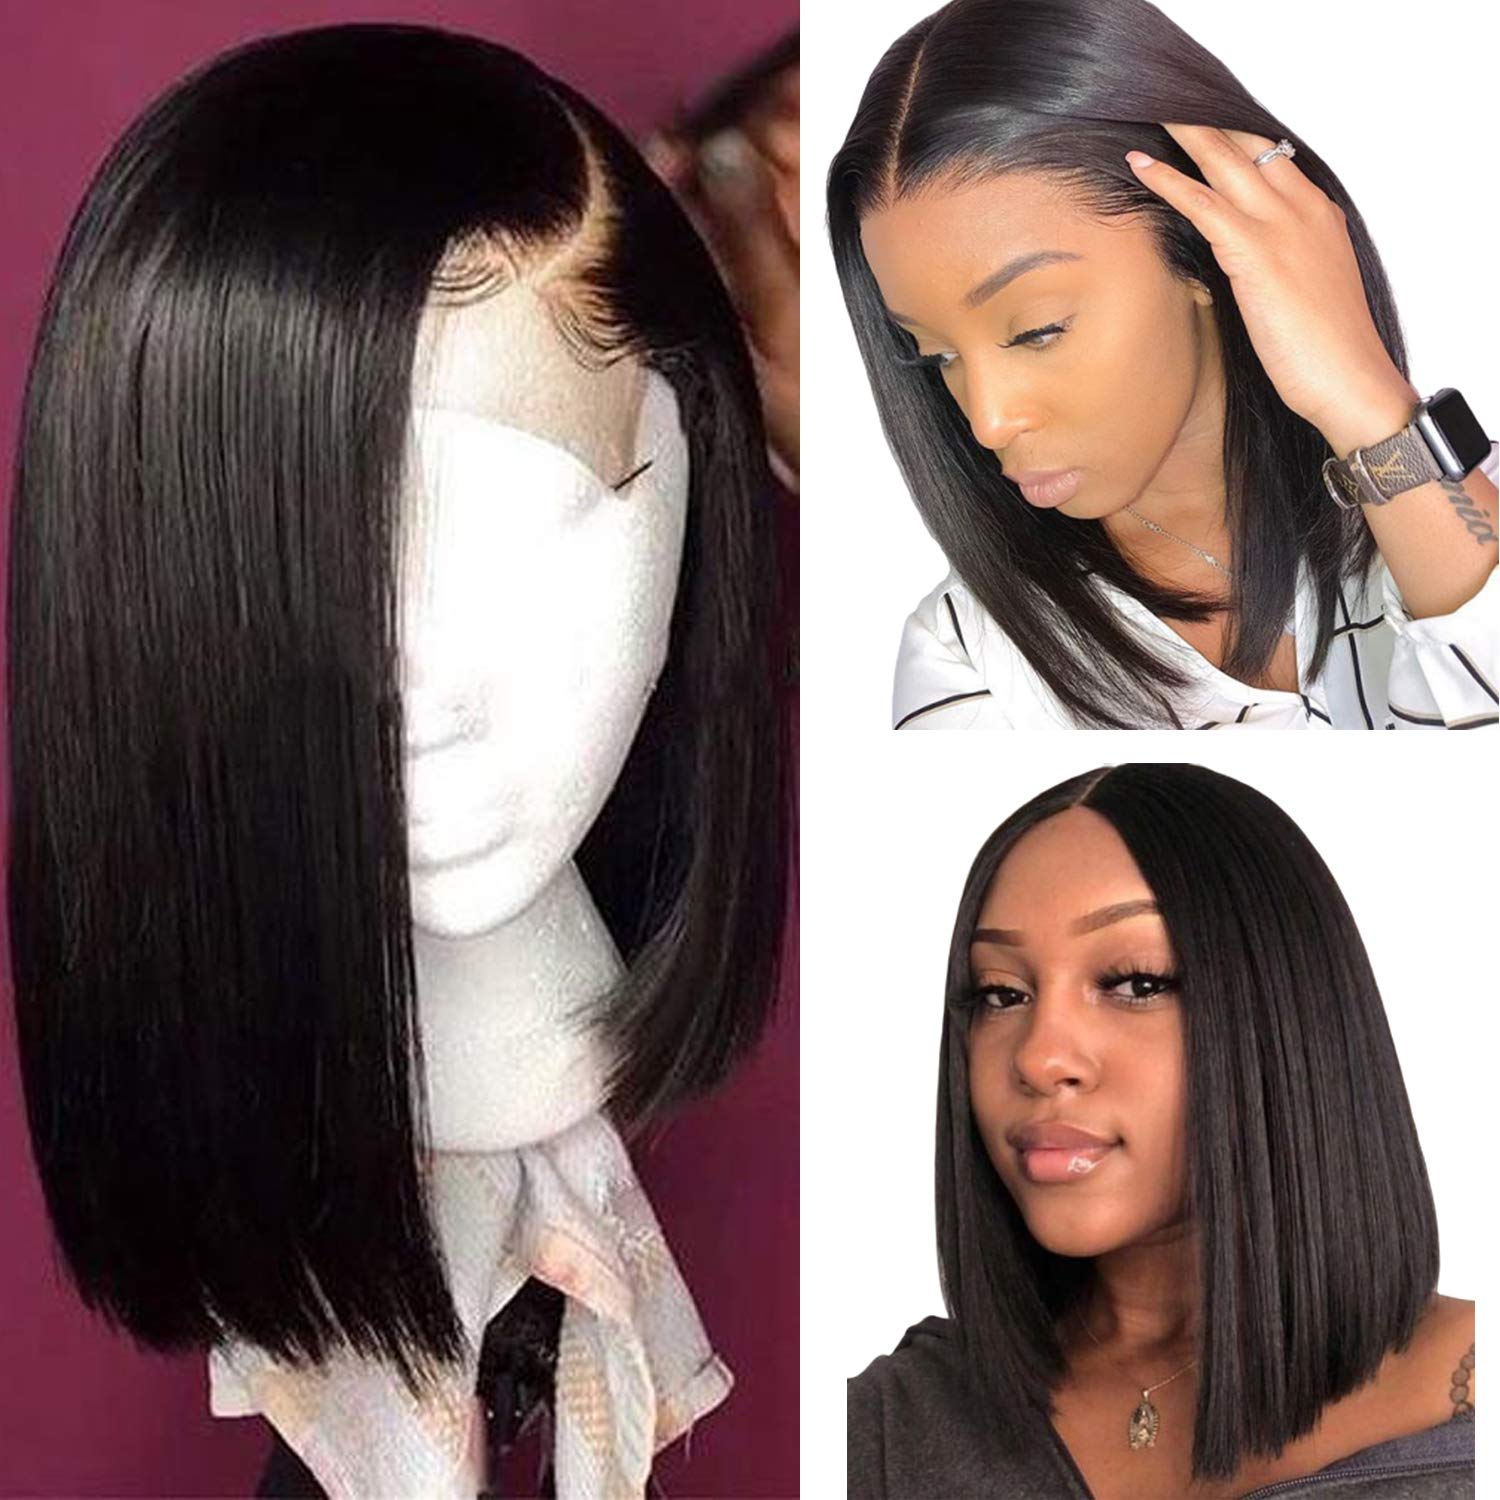 Amazon Com 14 Inch Long Black Human Hair Wigs For Women 180 Density Straight 1b Bob Wig Brazilian Virgin Remy Hair 13 4 Middle Part Lace Front Wig Pre Plucked With Baby Hair Beauty